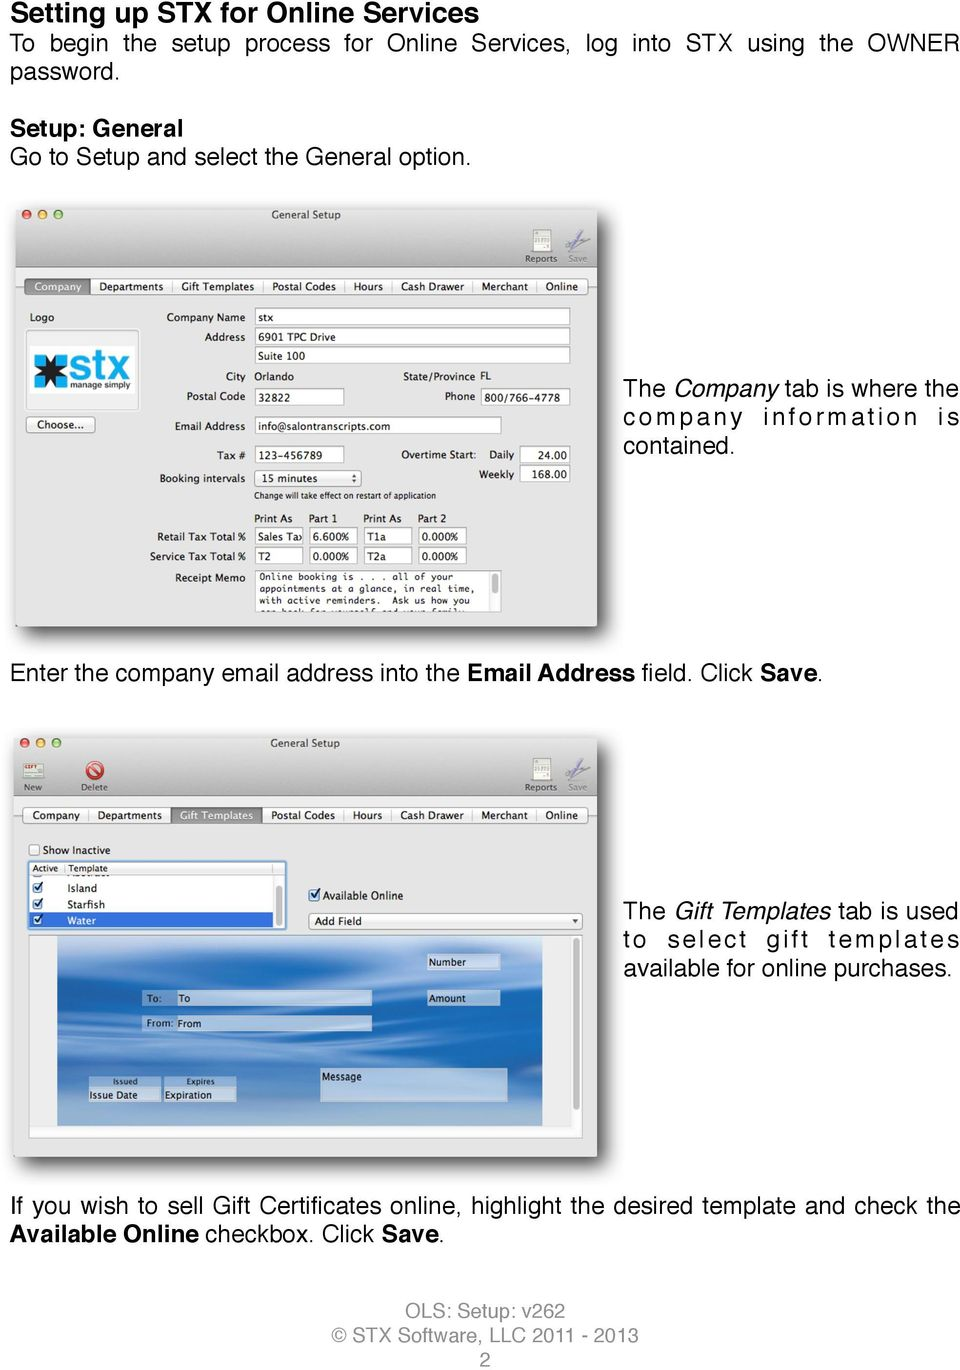 Enter the company email address into the Email Address field. Click Save.